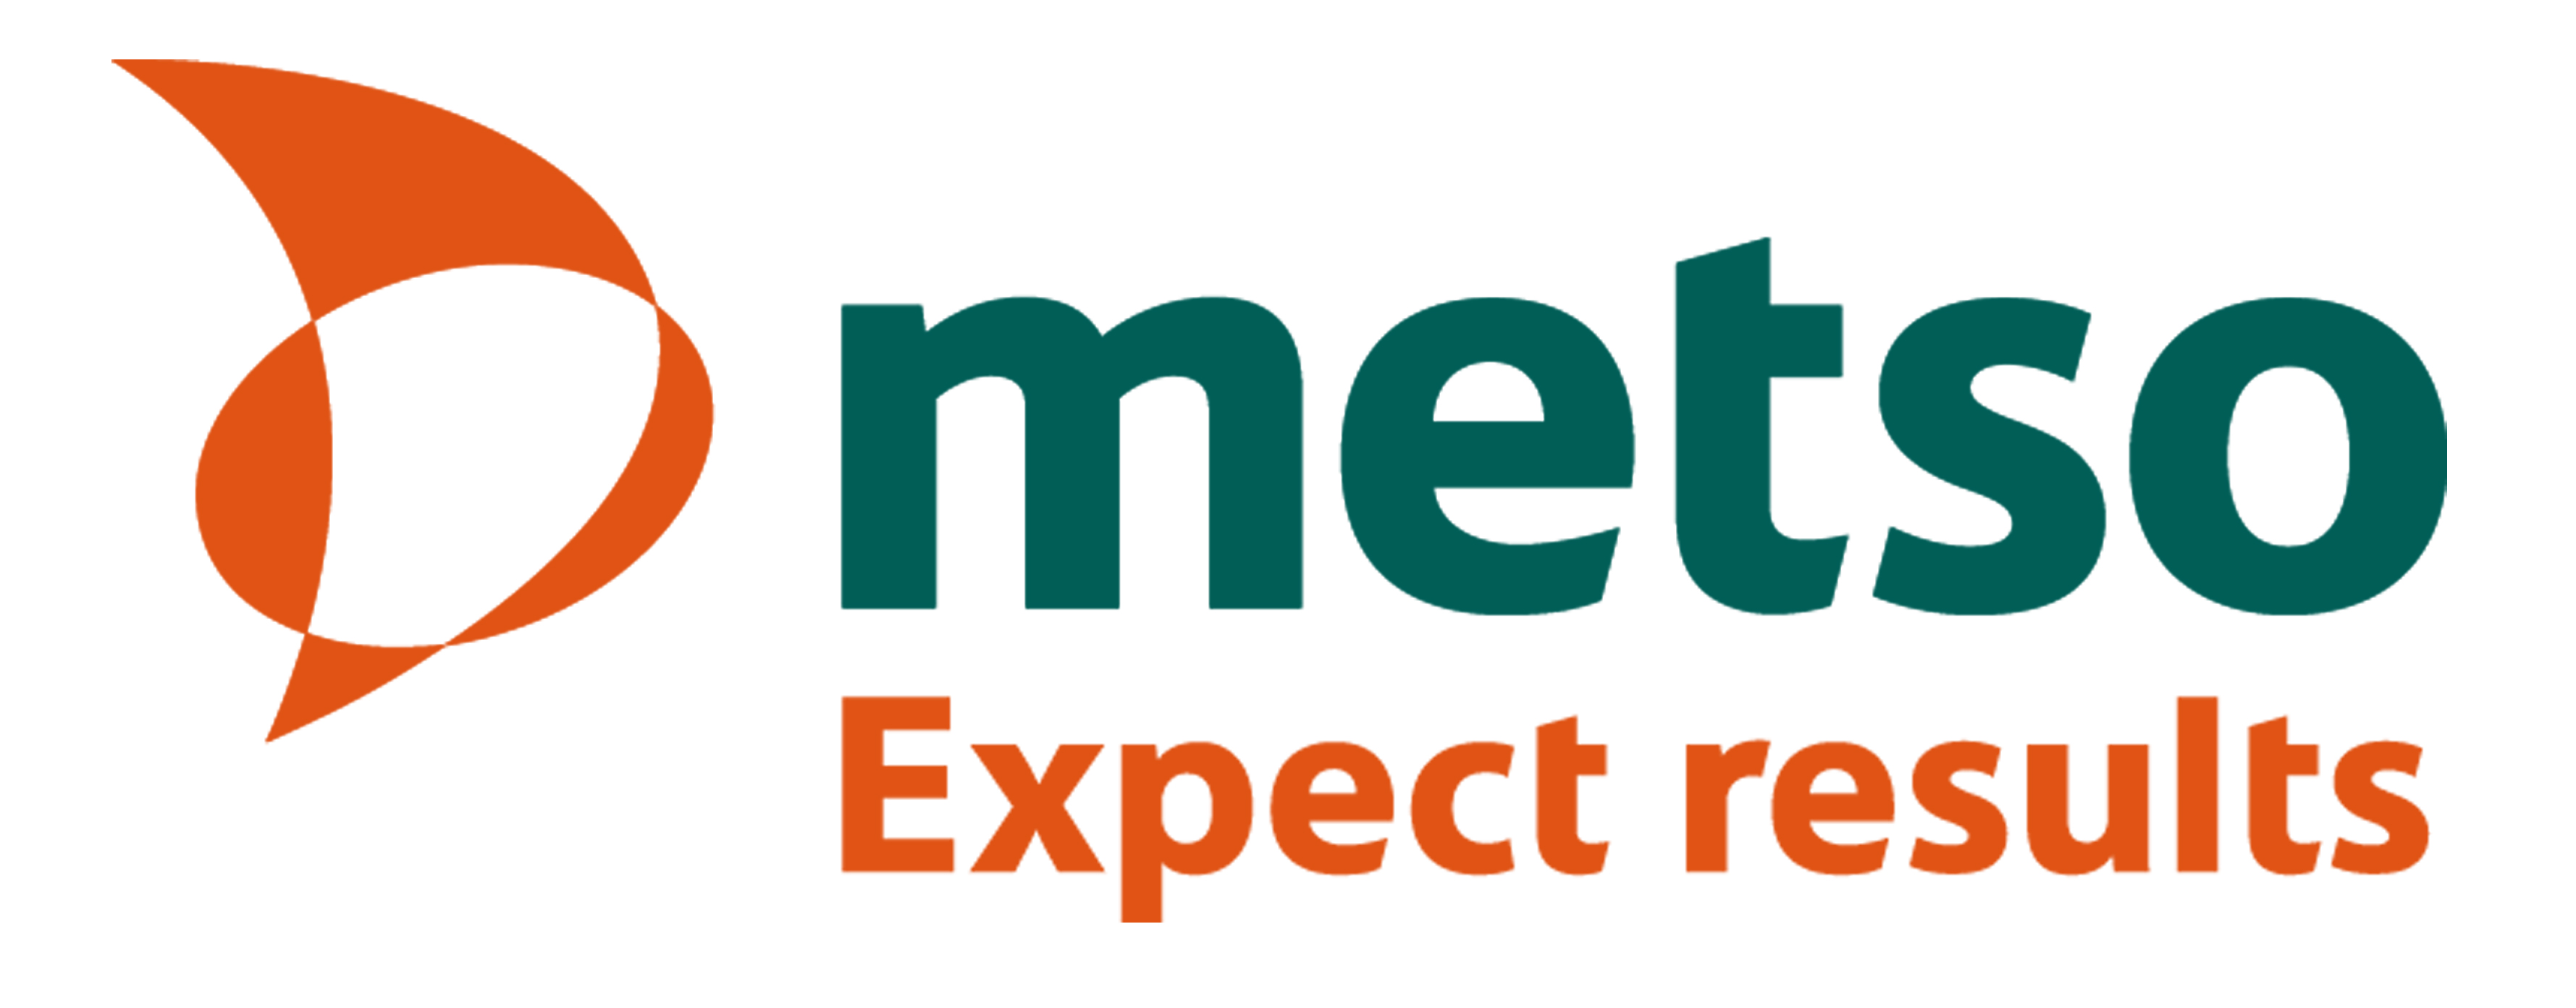 Metso Expect Results